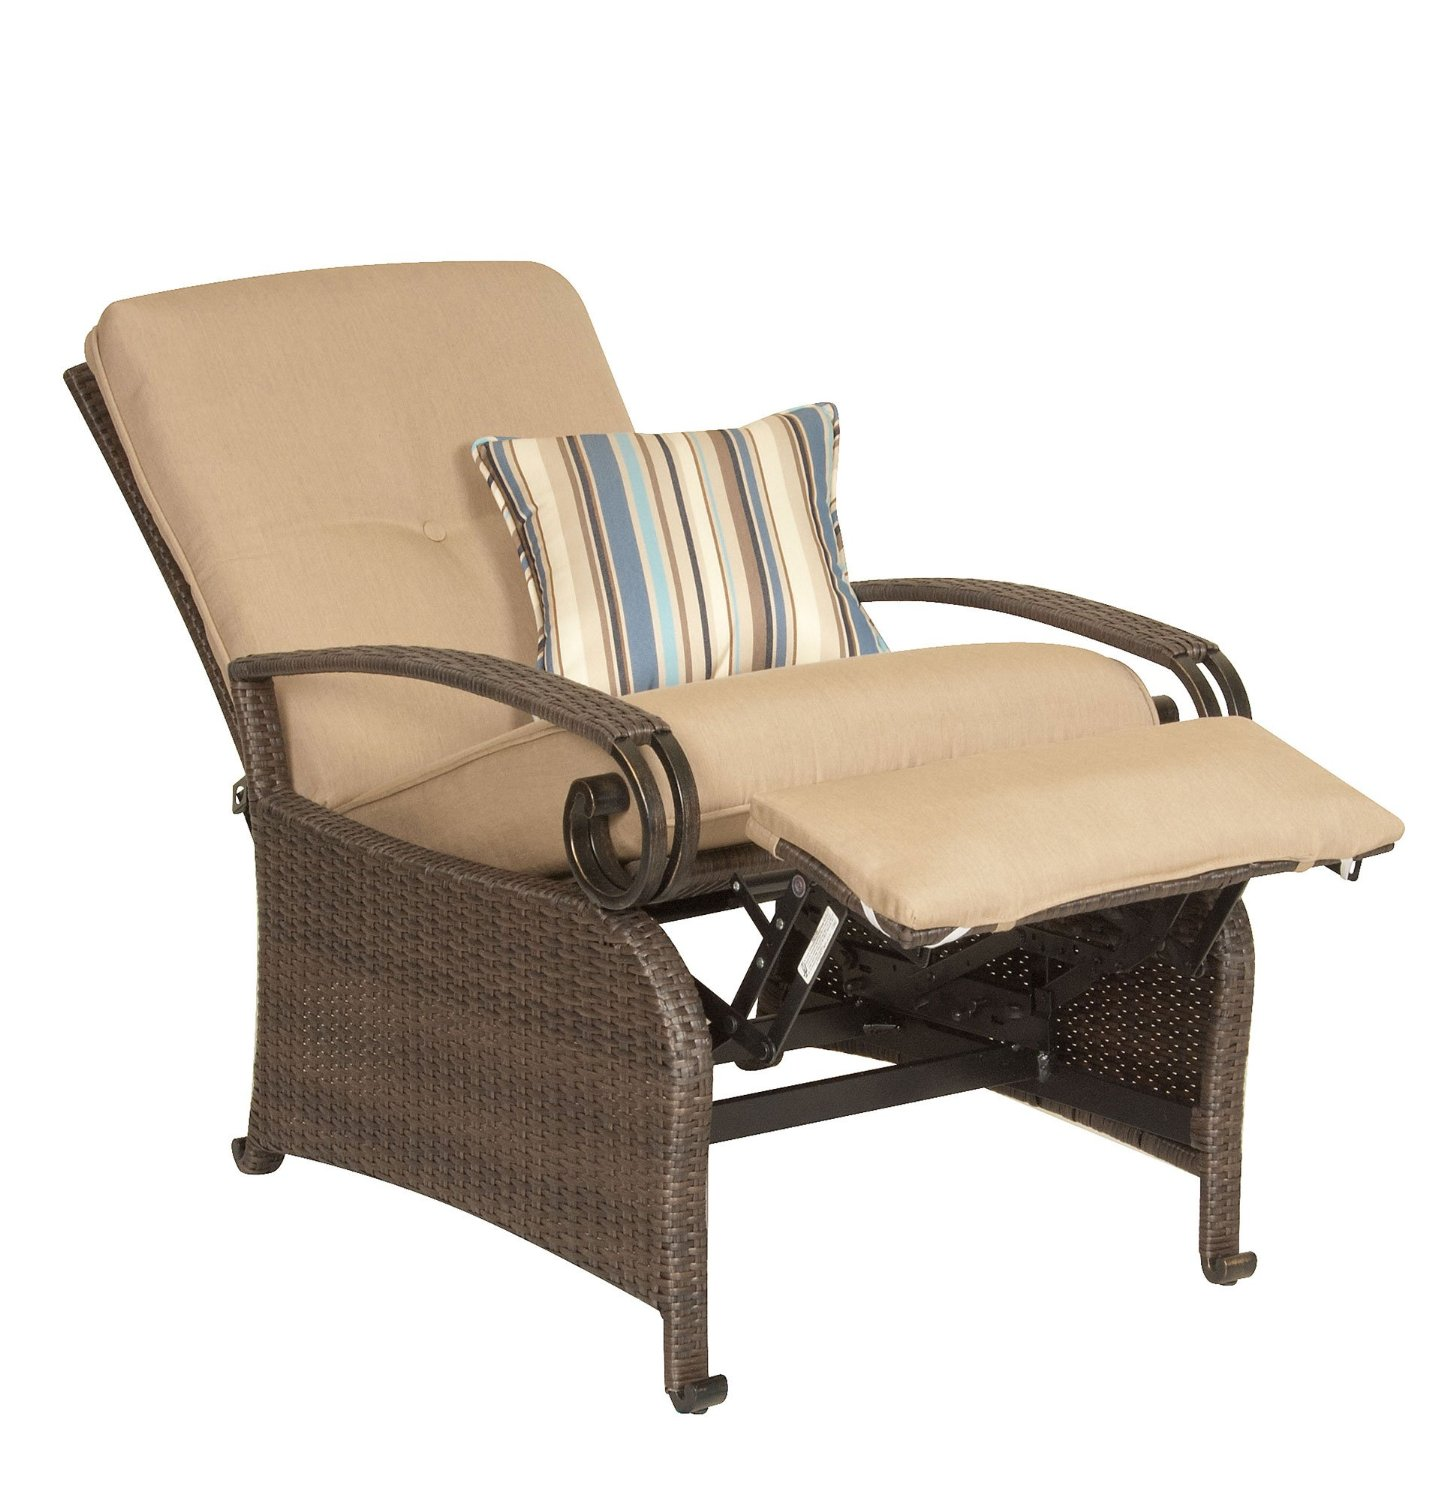 30 Beautiful Most Comfortable Outdoor Lounge Chair